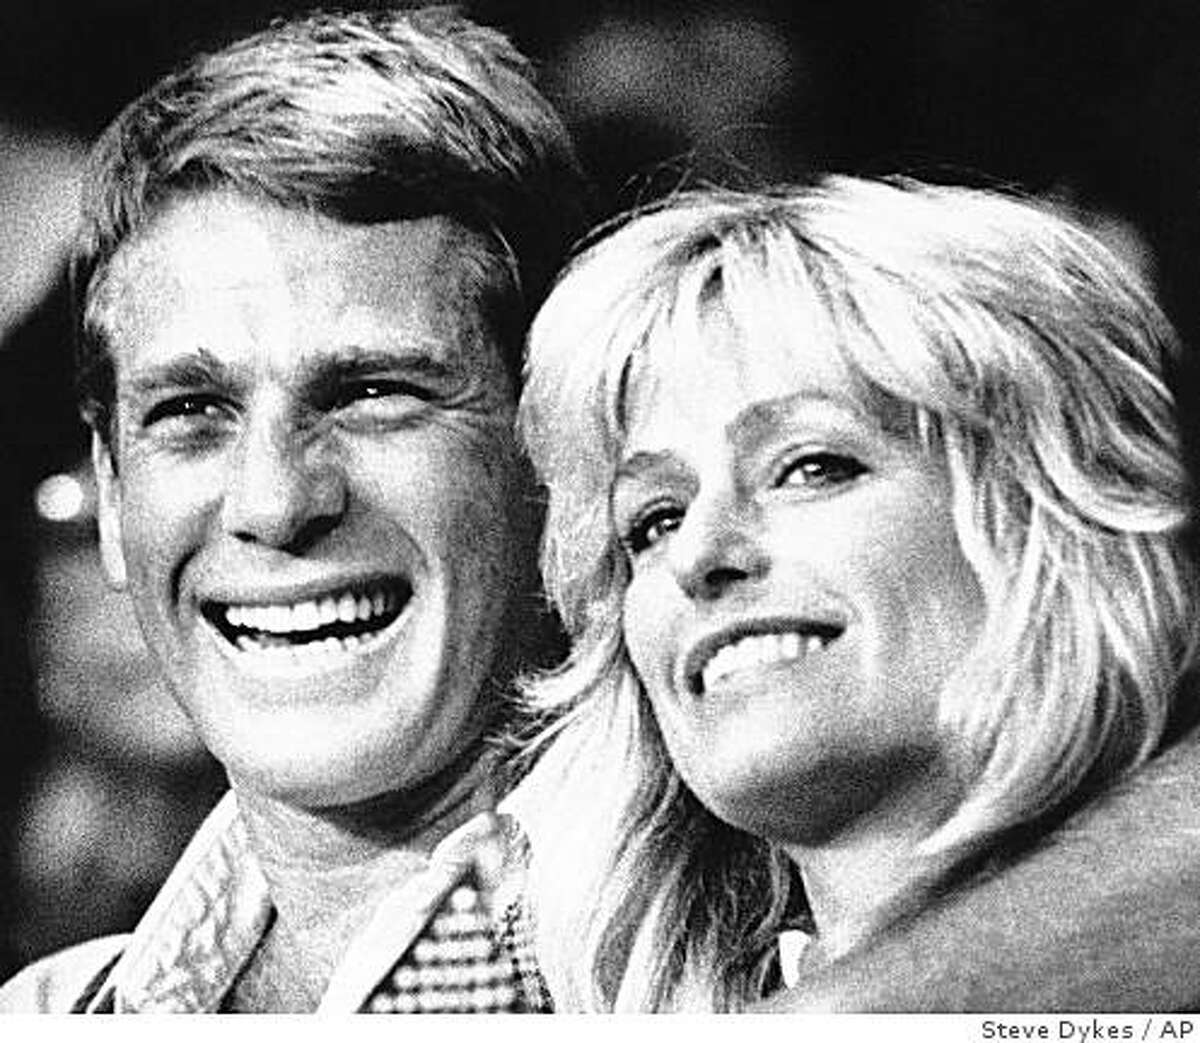 FILE - In this Aug. 12, 1985 file photo, actor Ryan ONeal, left, and actress Farrah Fawcett smile while sitting ringside at the Hollywood Palladium where a trio of U.S. Olympic boxers celebrated the one-year anniversary of their gold medal winning performances in Los Angeles, Calif. Fawcett died Thursday, June 25, 2009 in a Los Angeles hospital. She was 62. (AP Photo/Steve Dykes, file)